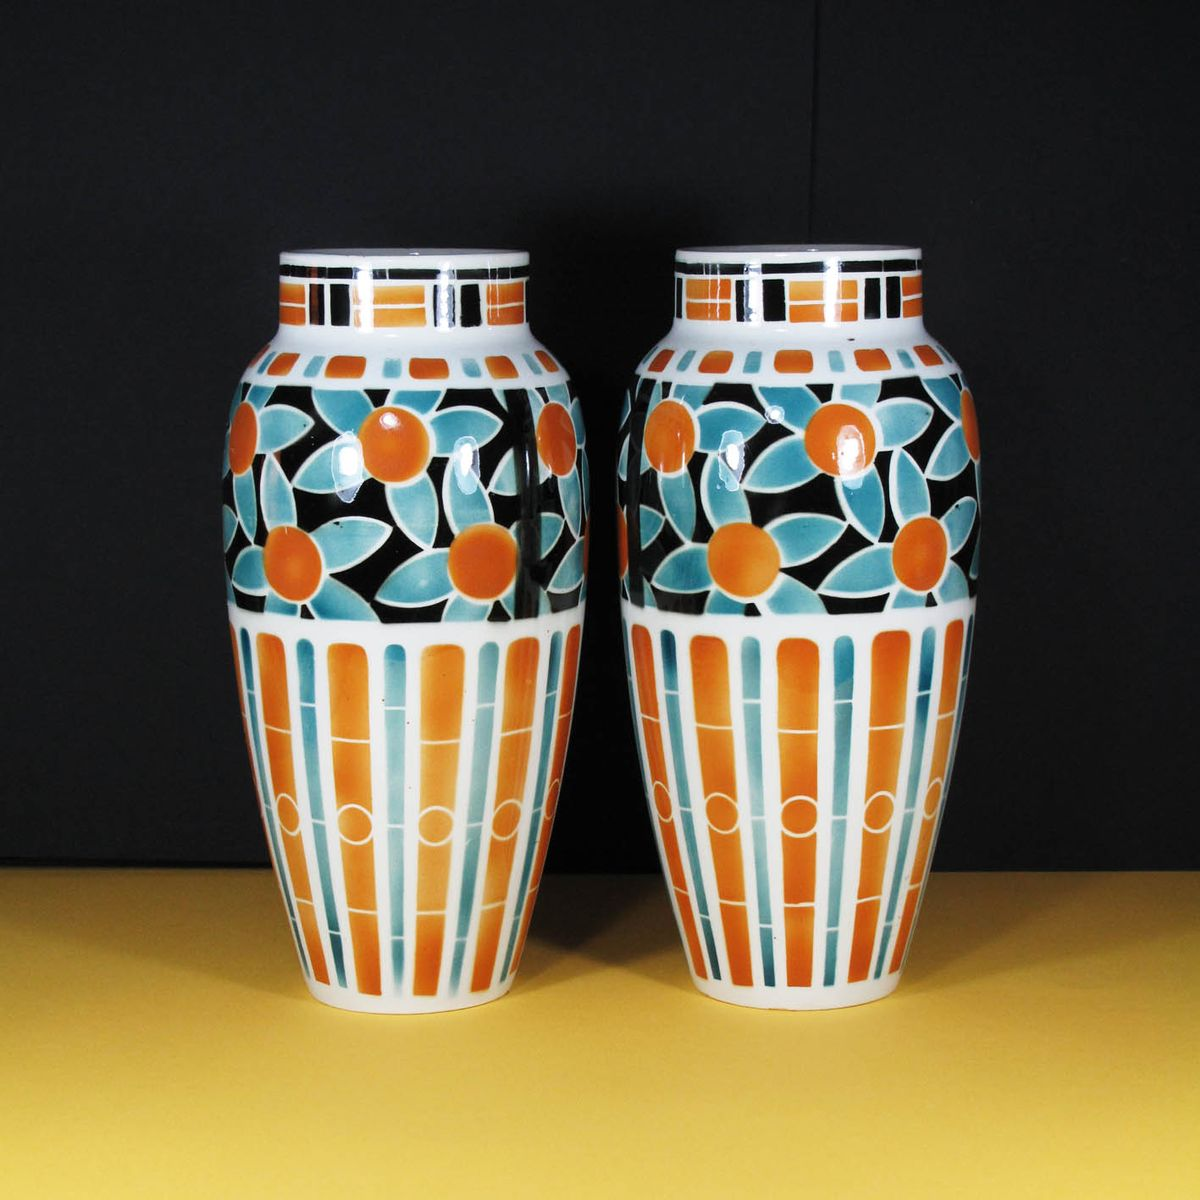 Vintage french art deco vases by keller et gurin for lunville vintage french art deco vases by keller et gurin for lunville set of 2 floridaeventfo Image collections